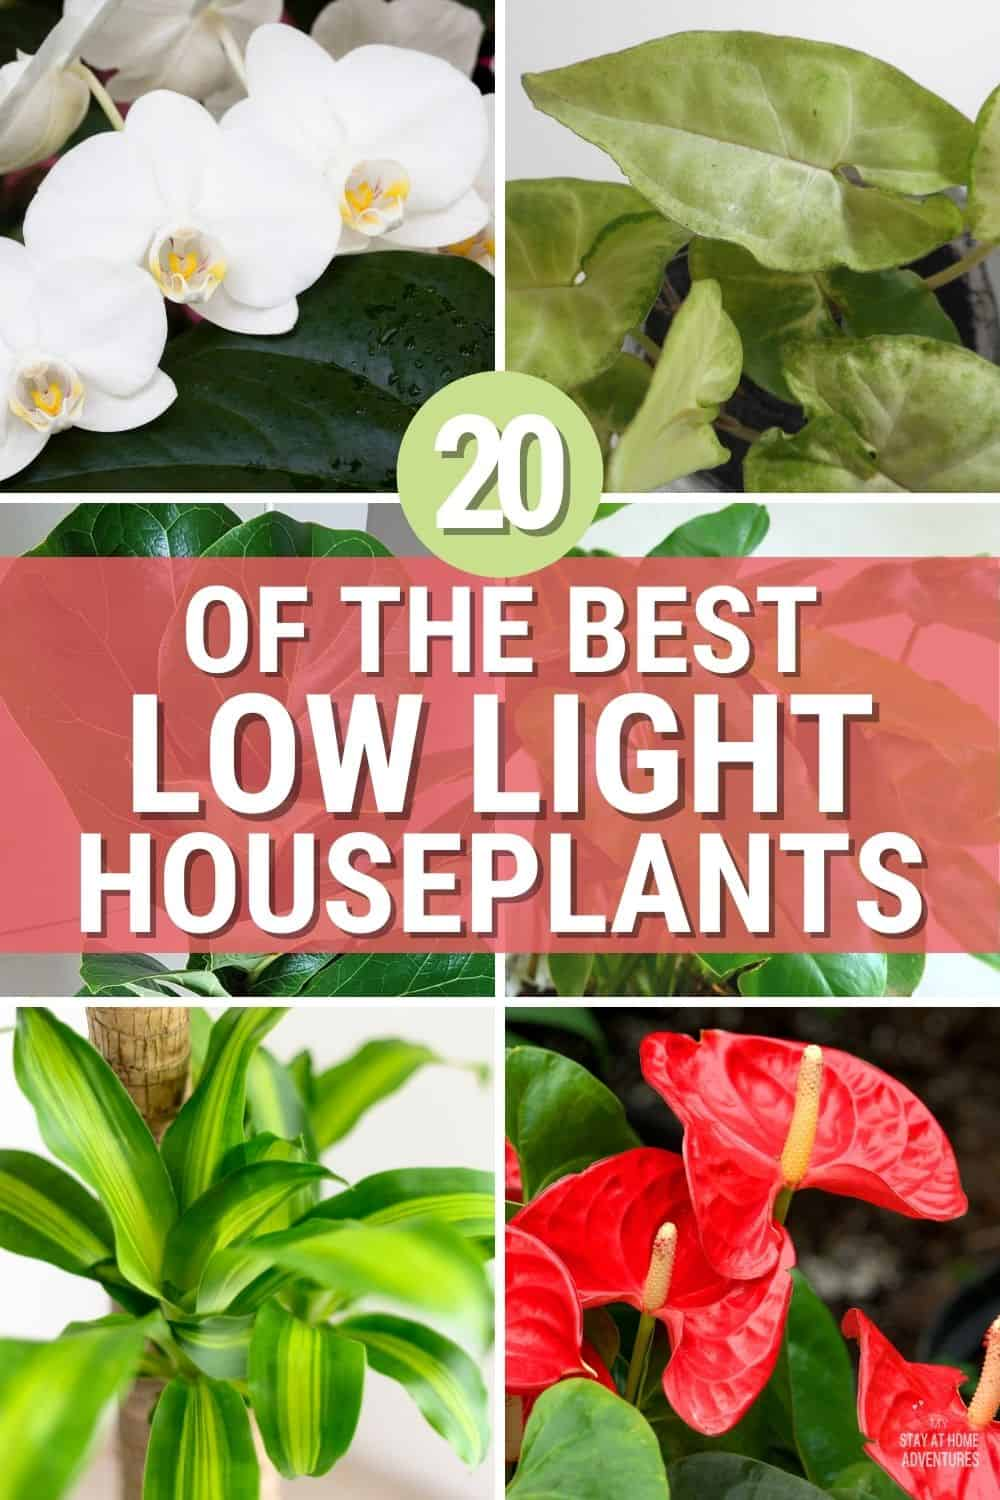 Plants help the environment by cleaning the air we breathe that's why we also bring them indoors. That makes Low Light Houseplants perfect. via @mystayathome